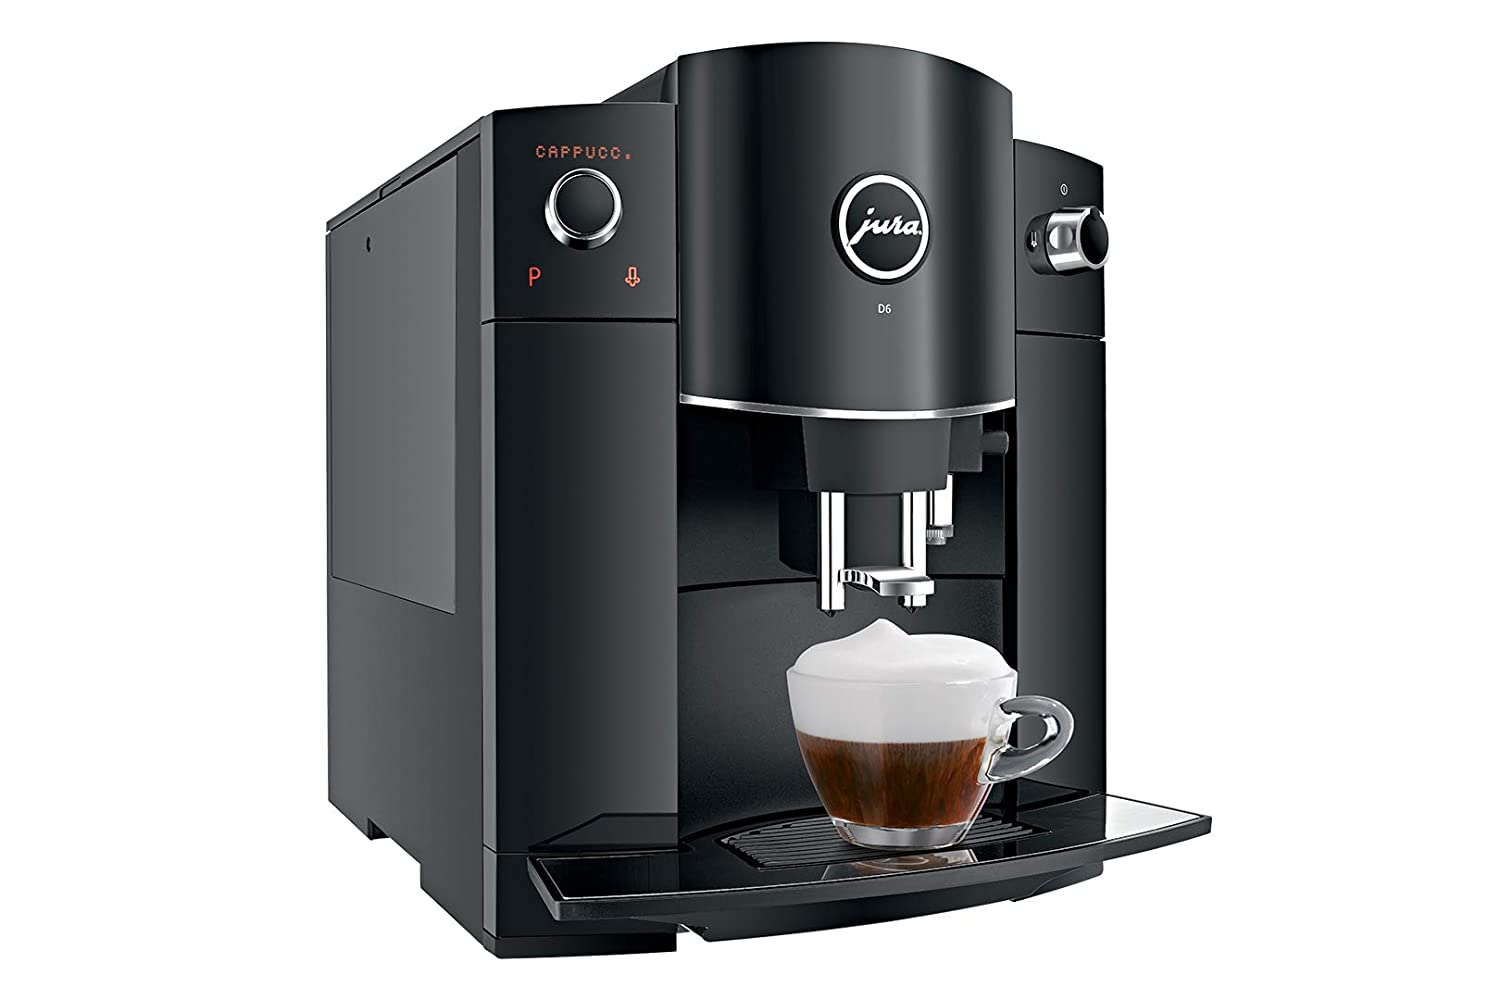 Amazon.com: Jura 15216 D6 - Cafetera automática, color ...